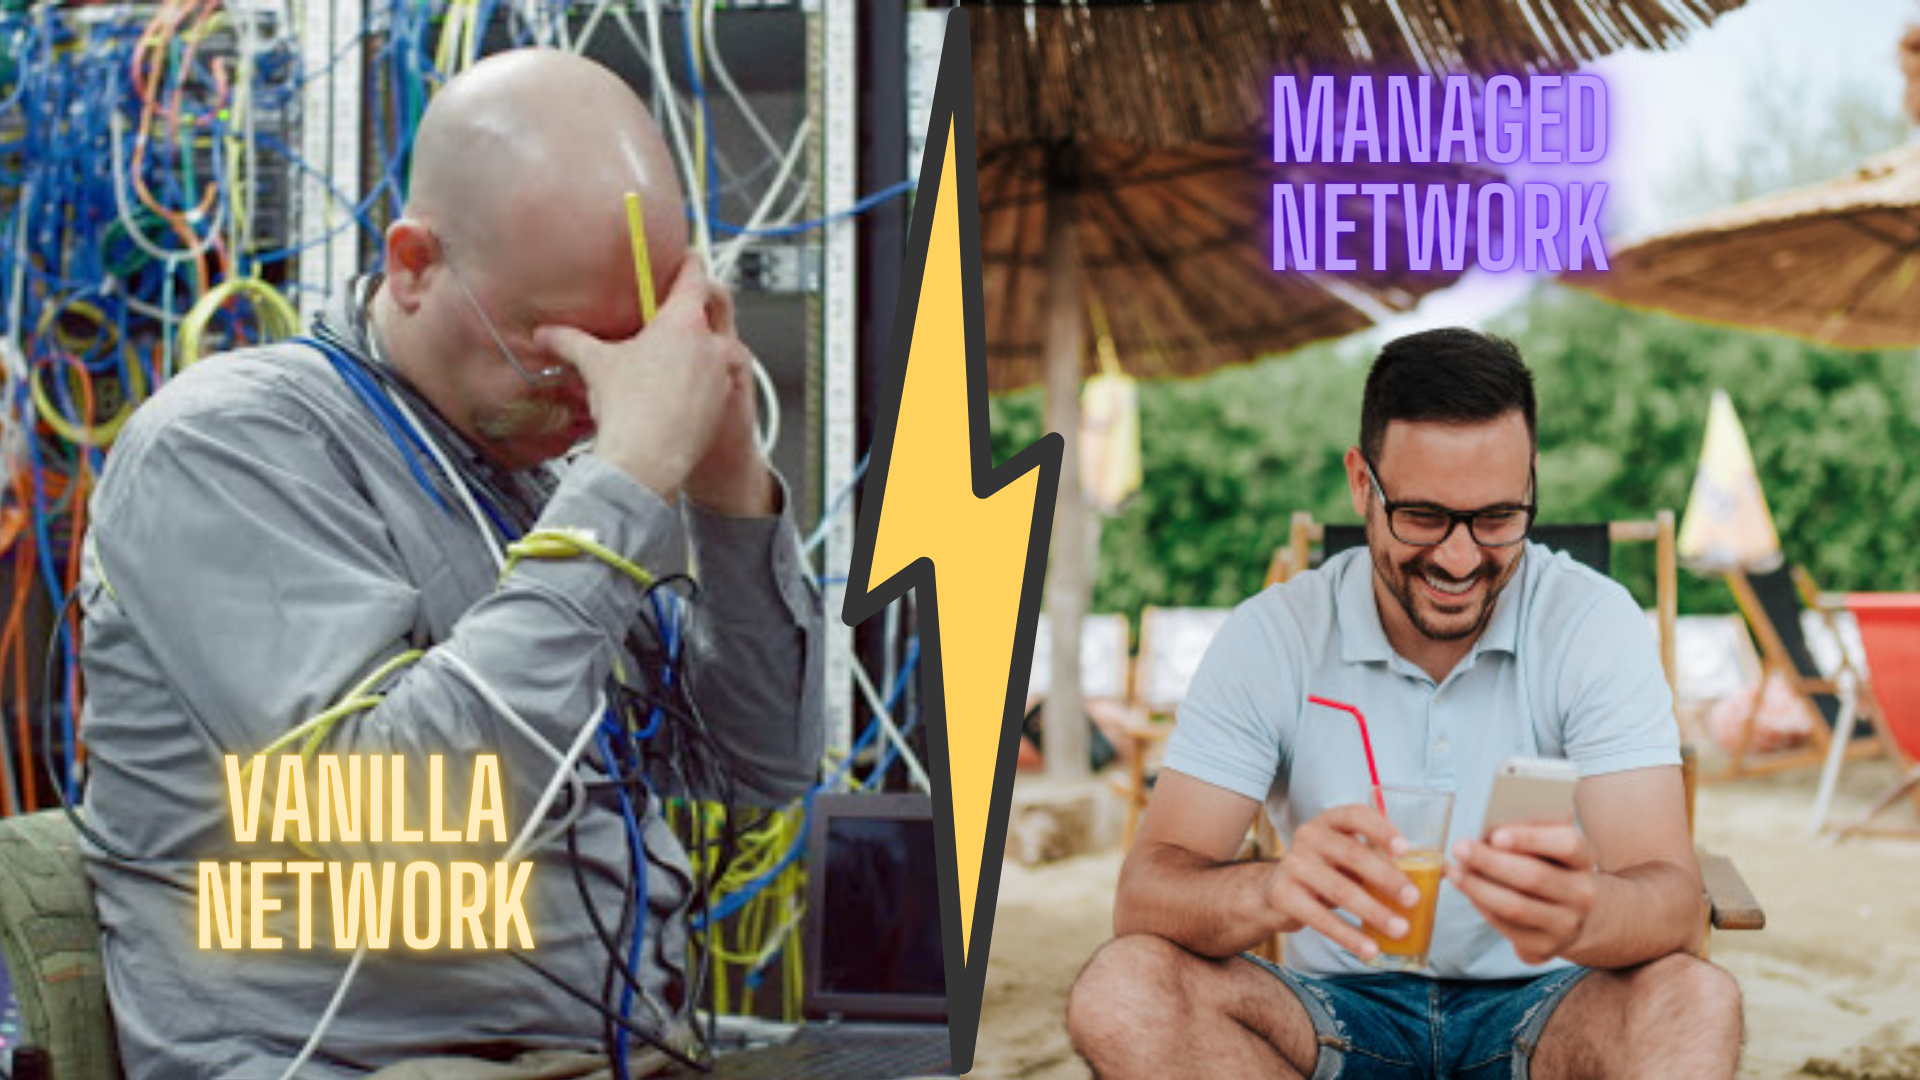 Two contrasting images of IT people depicting managed and unmanaged workspace networks